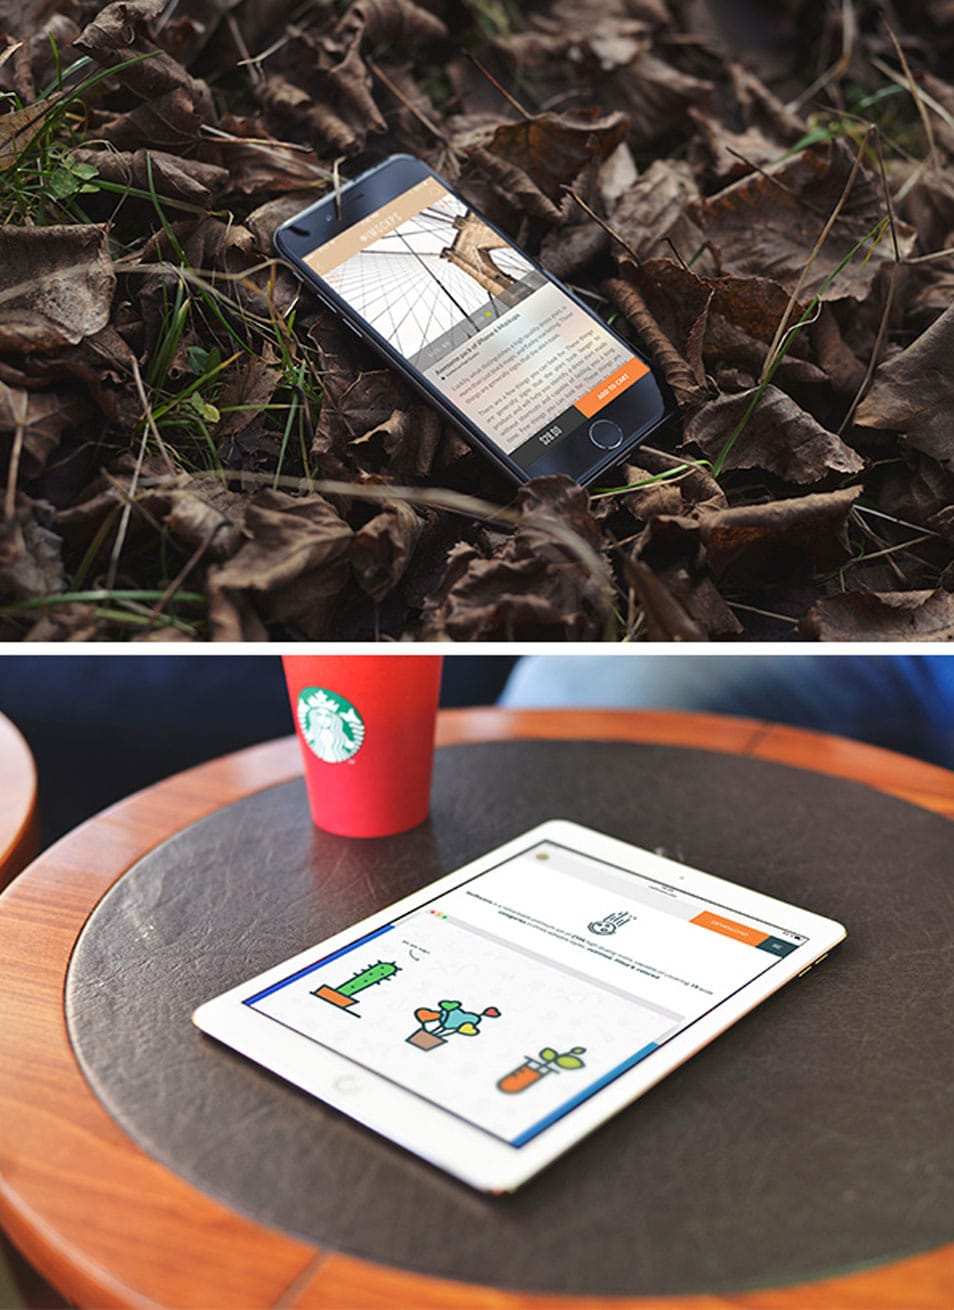 iPhone 6 & iPad Air 2 Photo MockUps